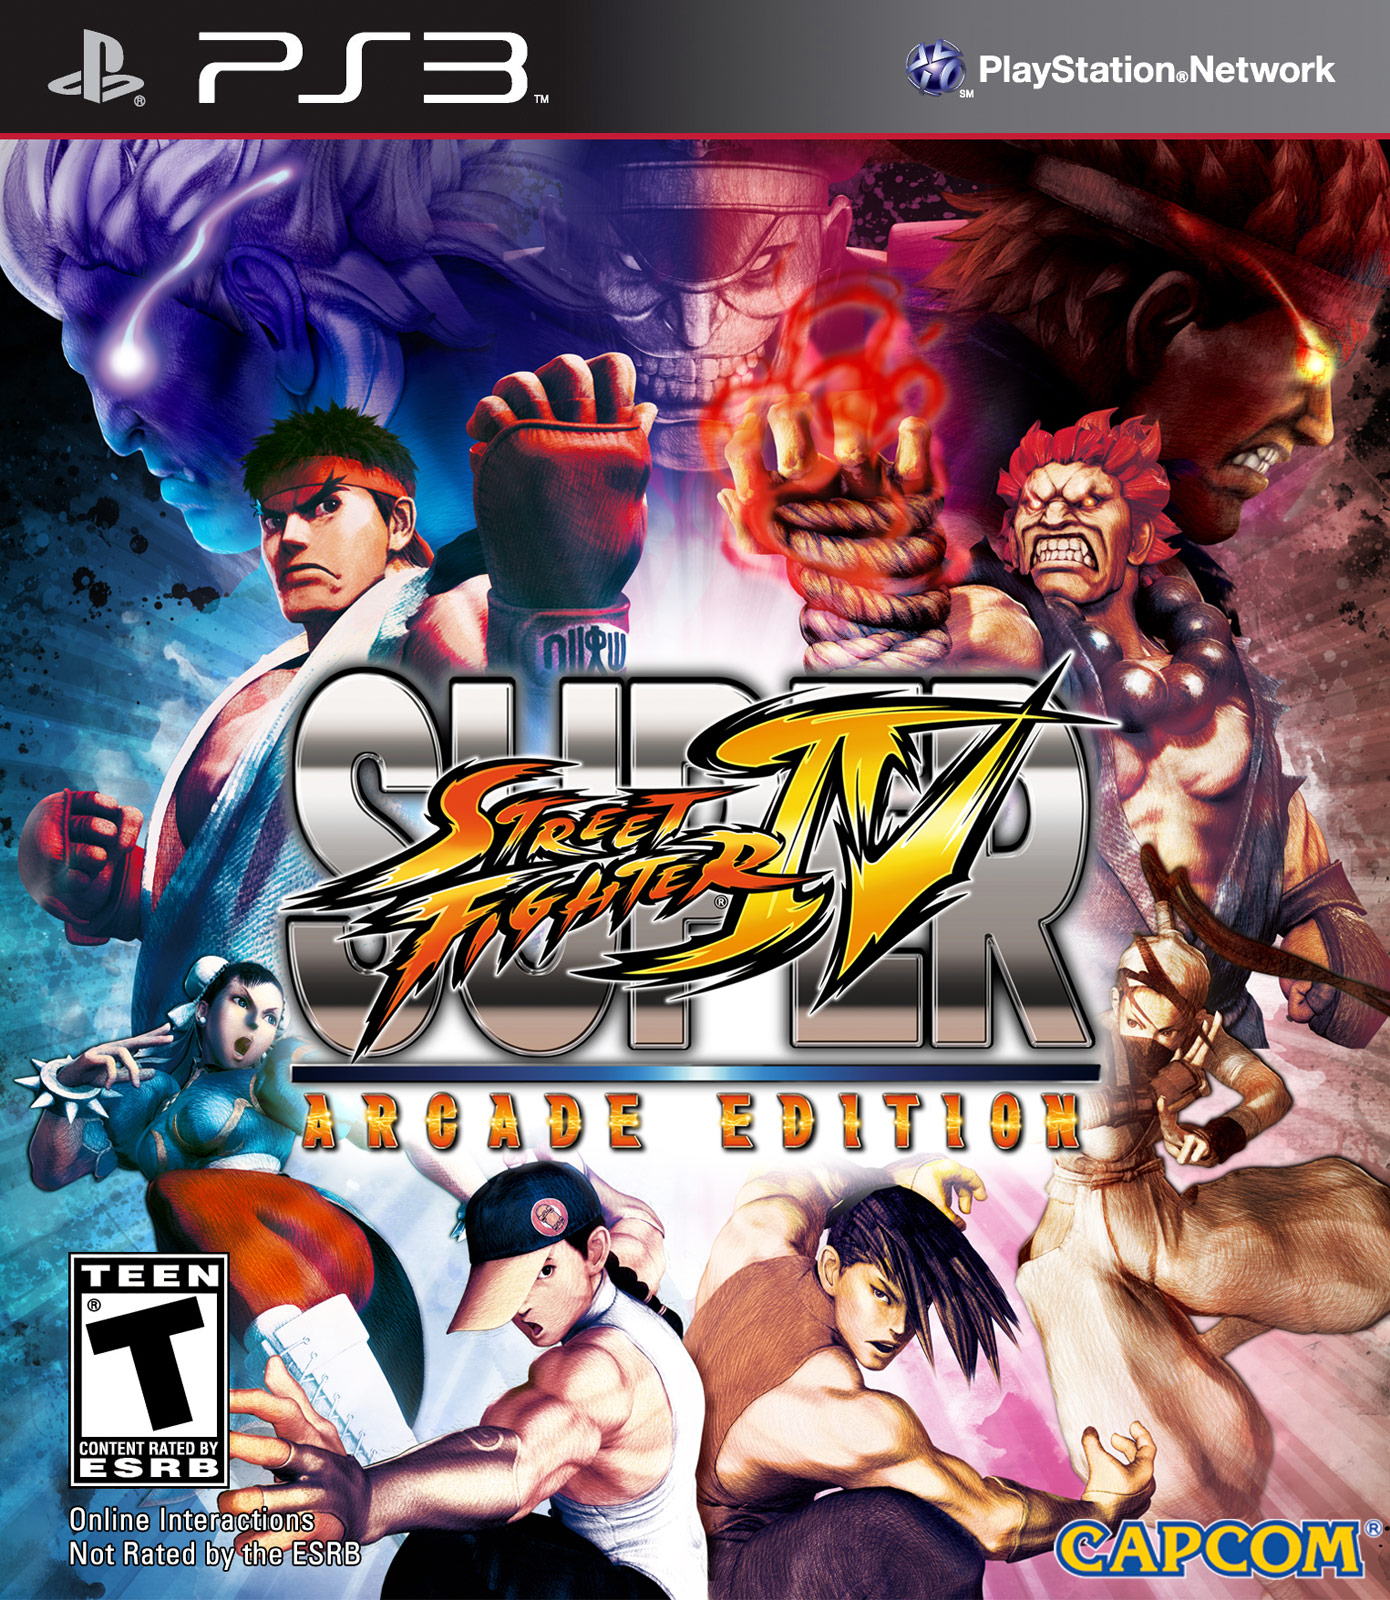 Super Street Fighter 4 Arcade Edition image #2